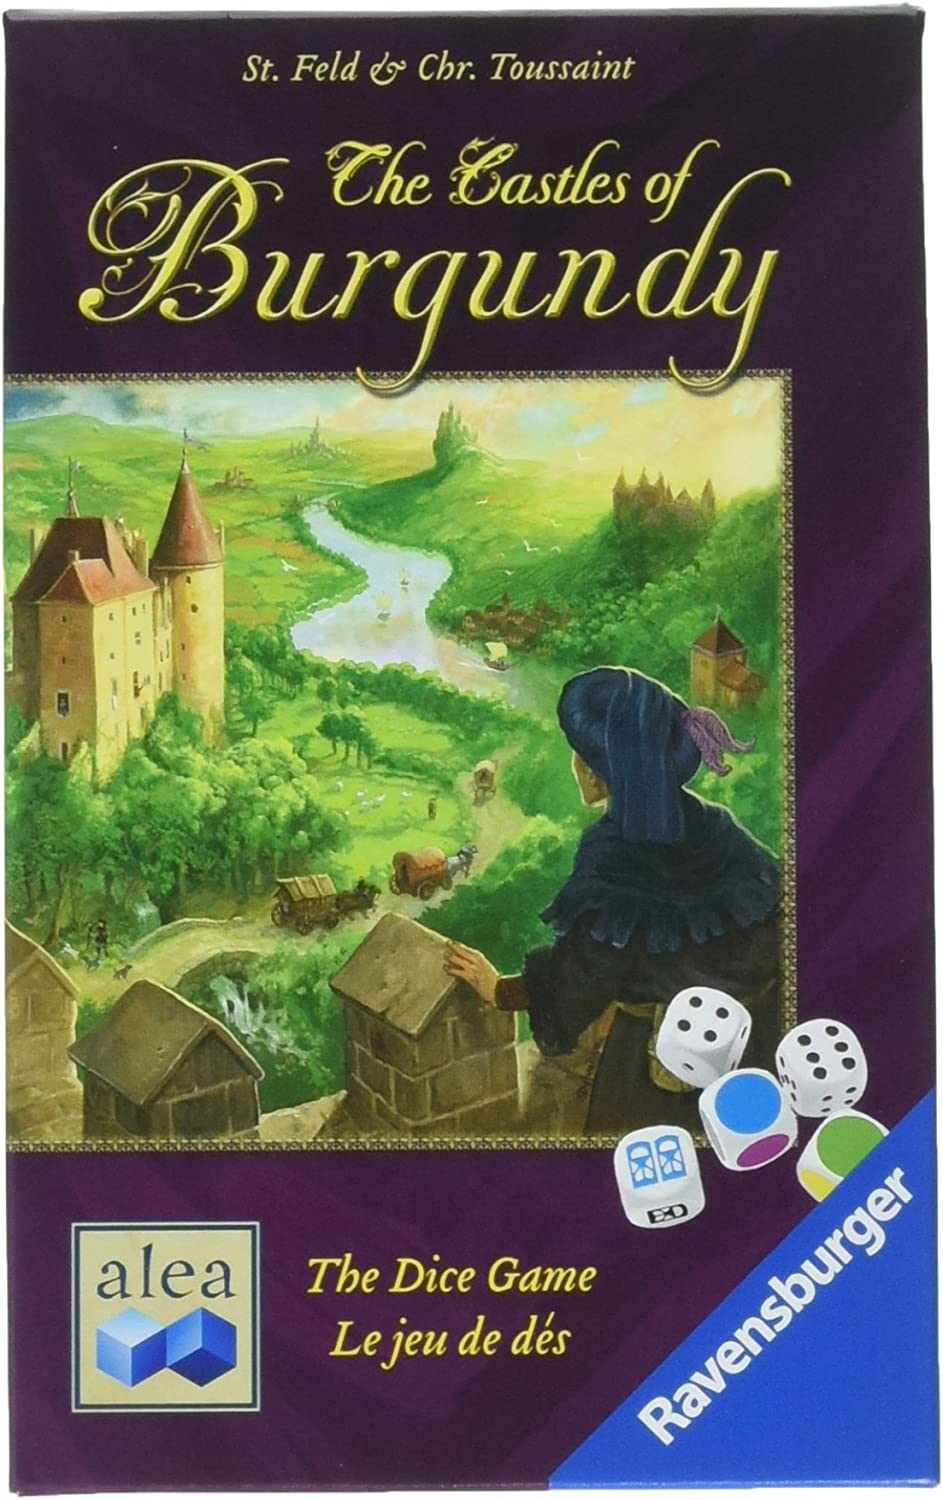 Ravensburger The Castles of Burgundy for Ages 10 & Up - Strategy Dice Game of Decision-Making & Territory Building